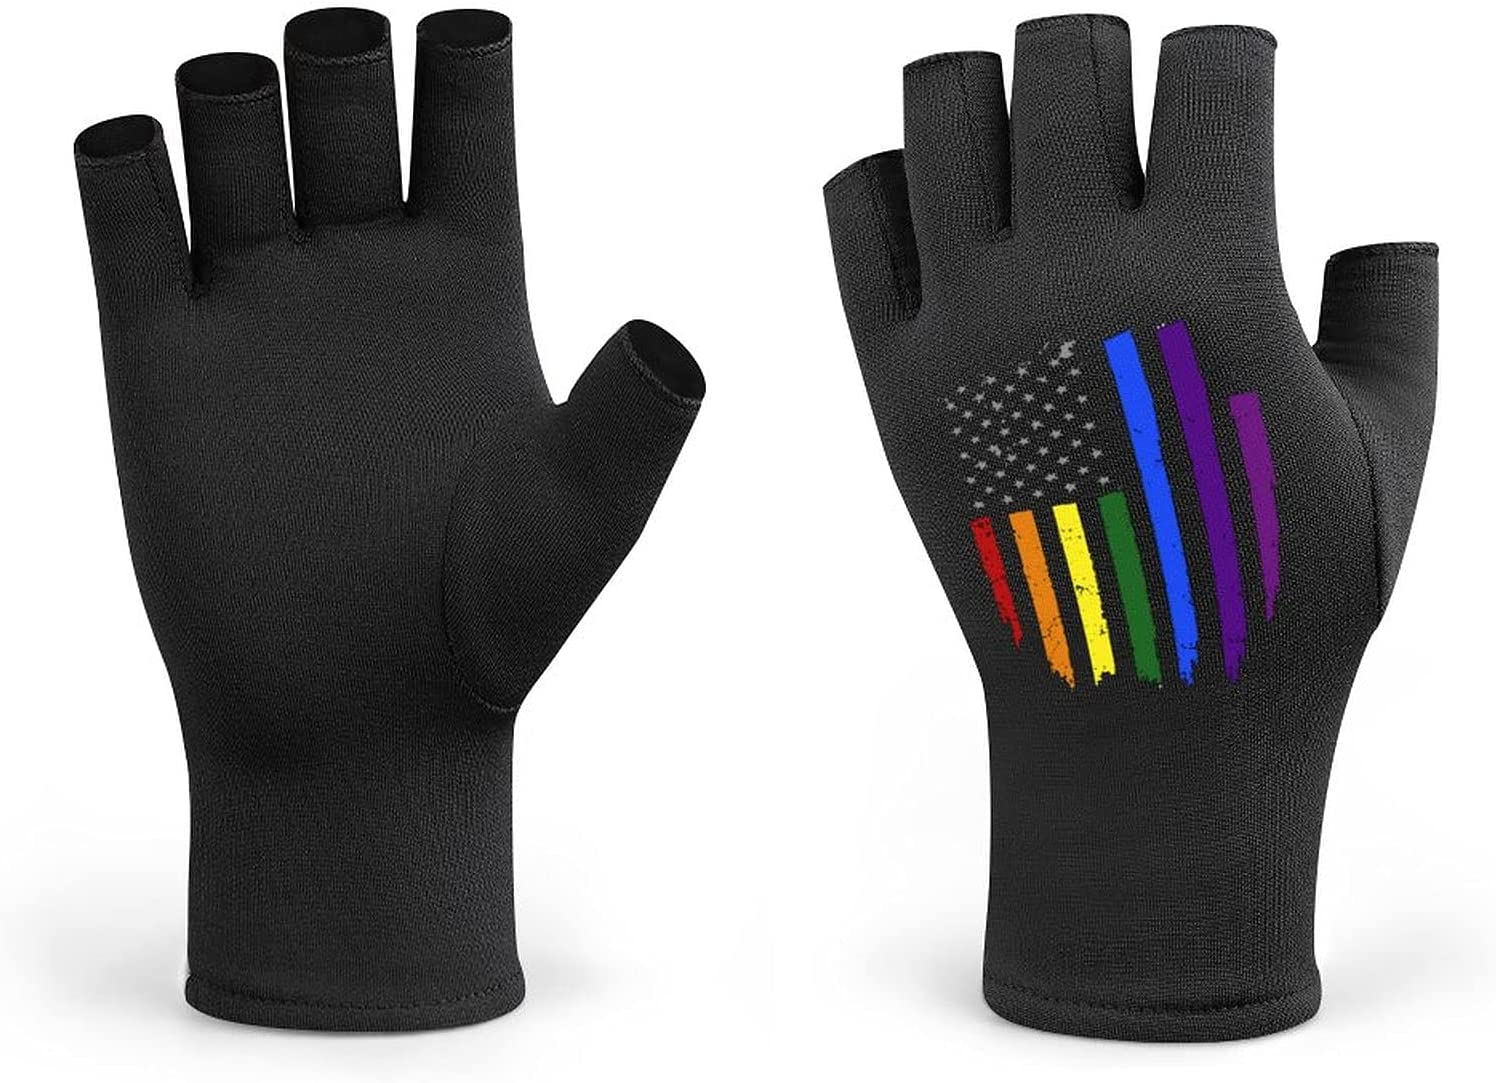 Gay LGBT Pride Rainbow Flag Unisex Half Finger Cycling Gloves, Road Bike Gloves Shockproof Breathable for Running,Motorcycle,Work Out